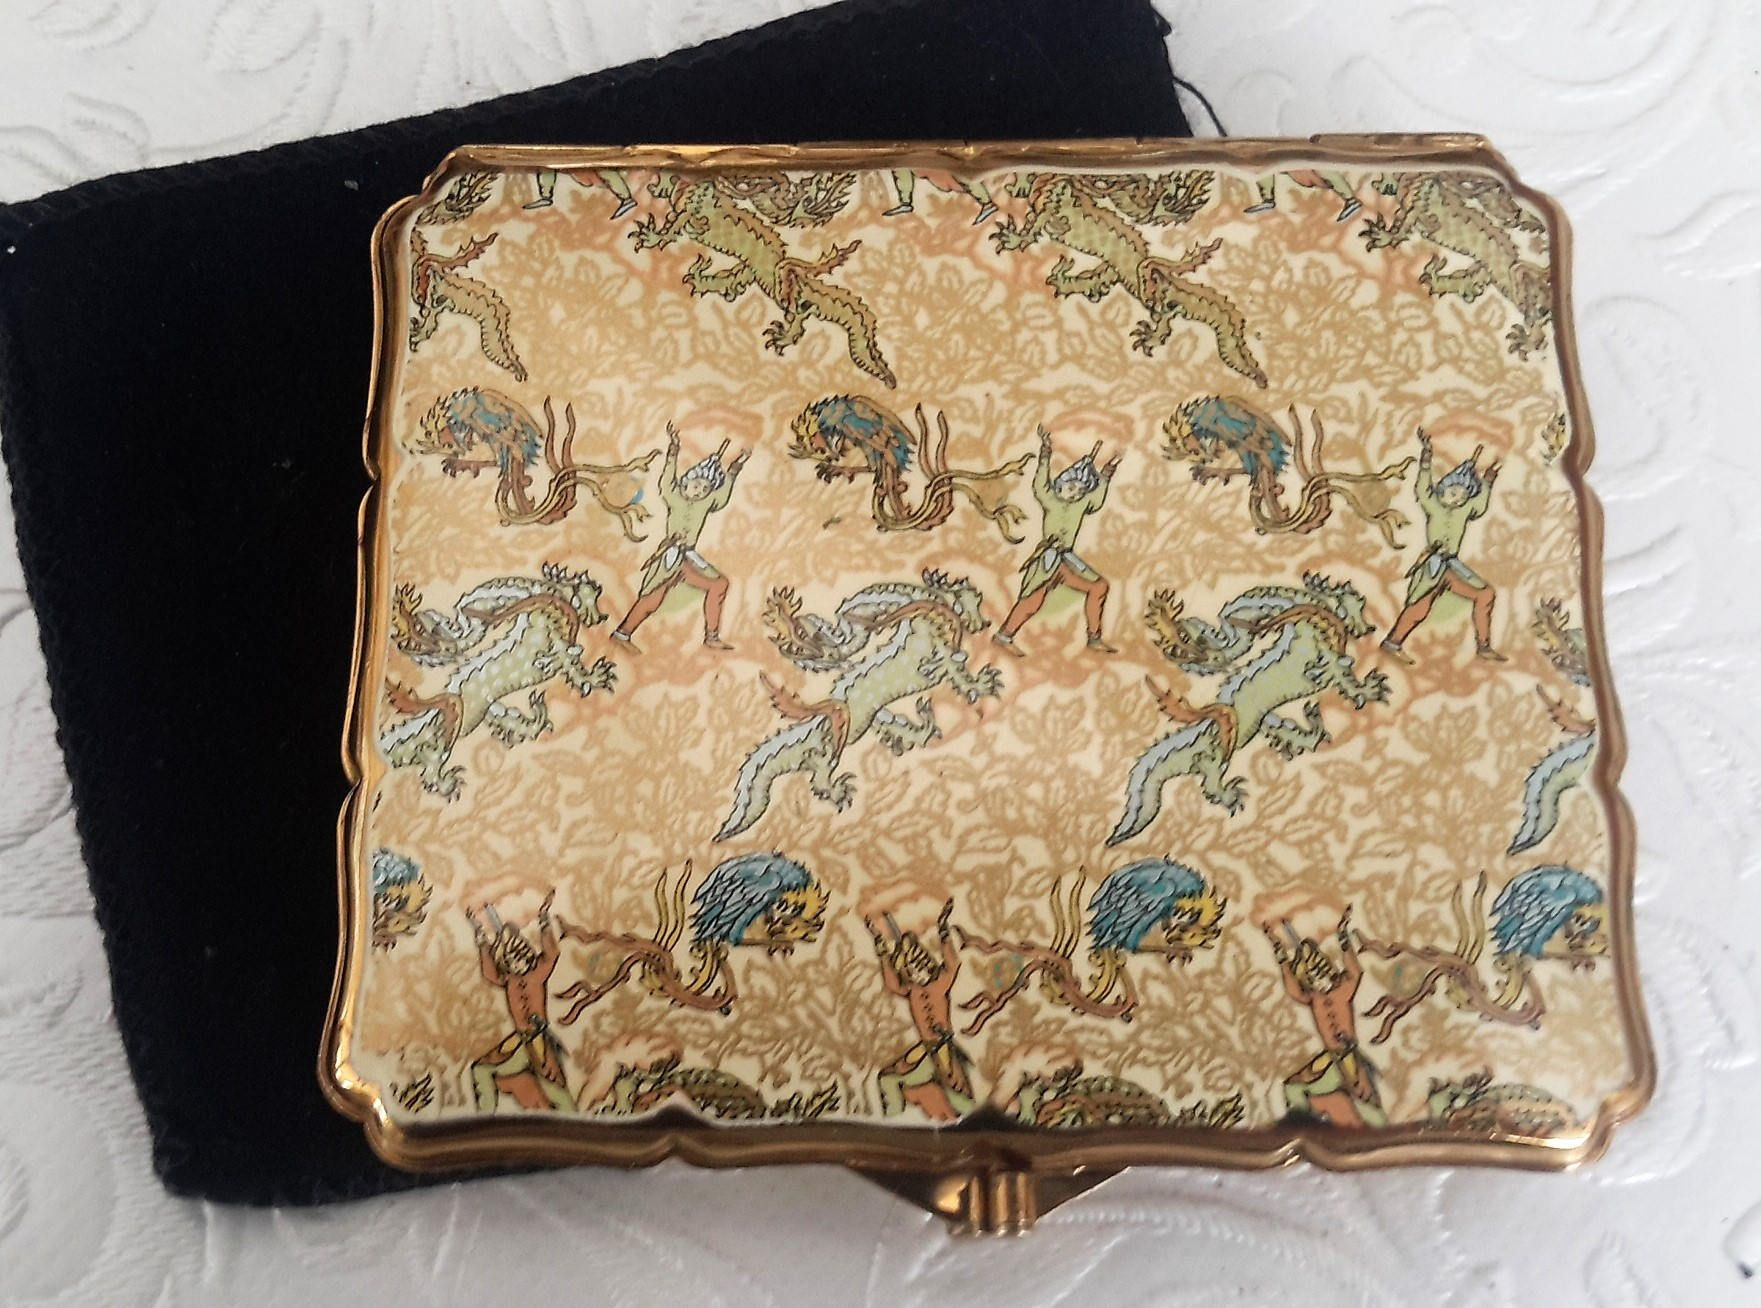 Stratton cigarette case, 1950s, Chinese dragon enamelled and Gold Tone English card case. Tobacciana by NanaBarbarastreasure on Etsy